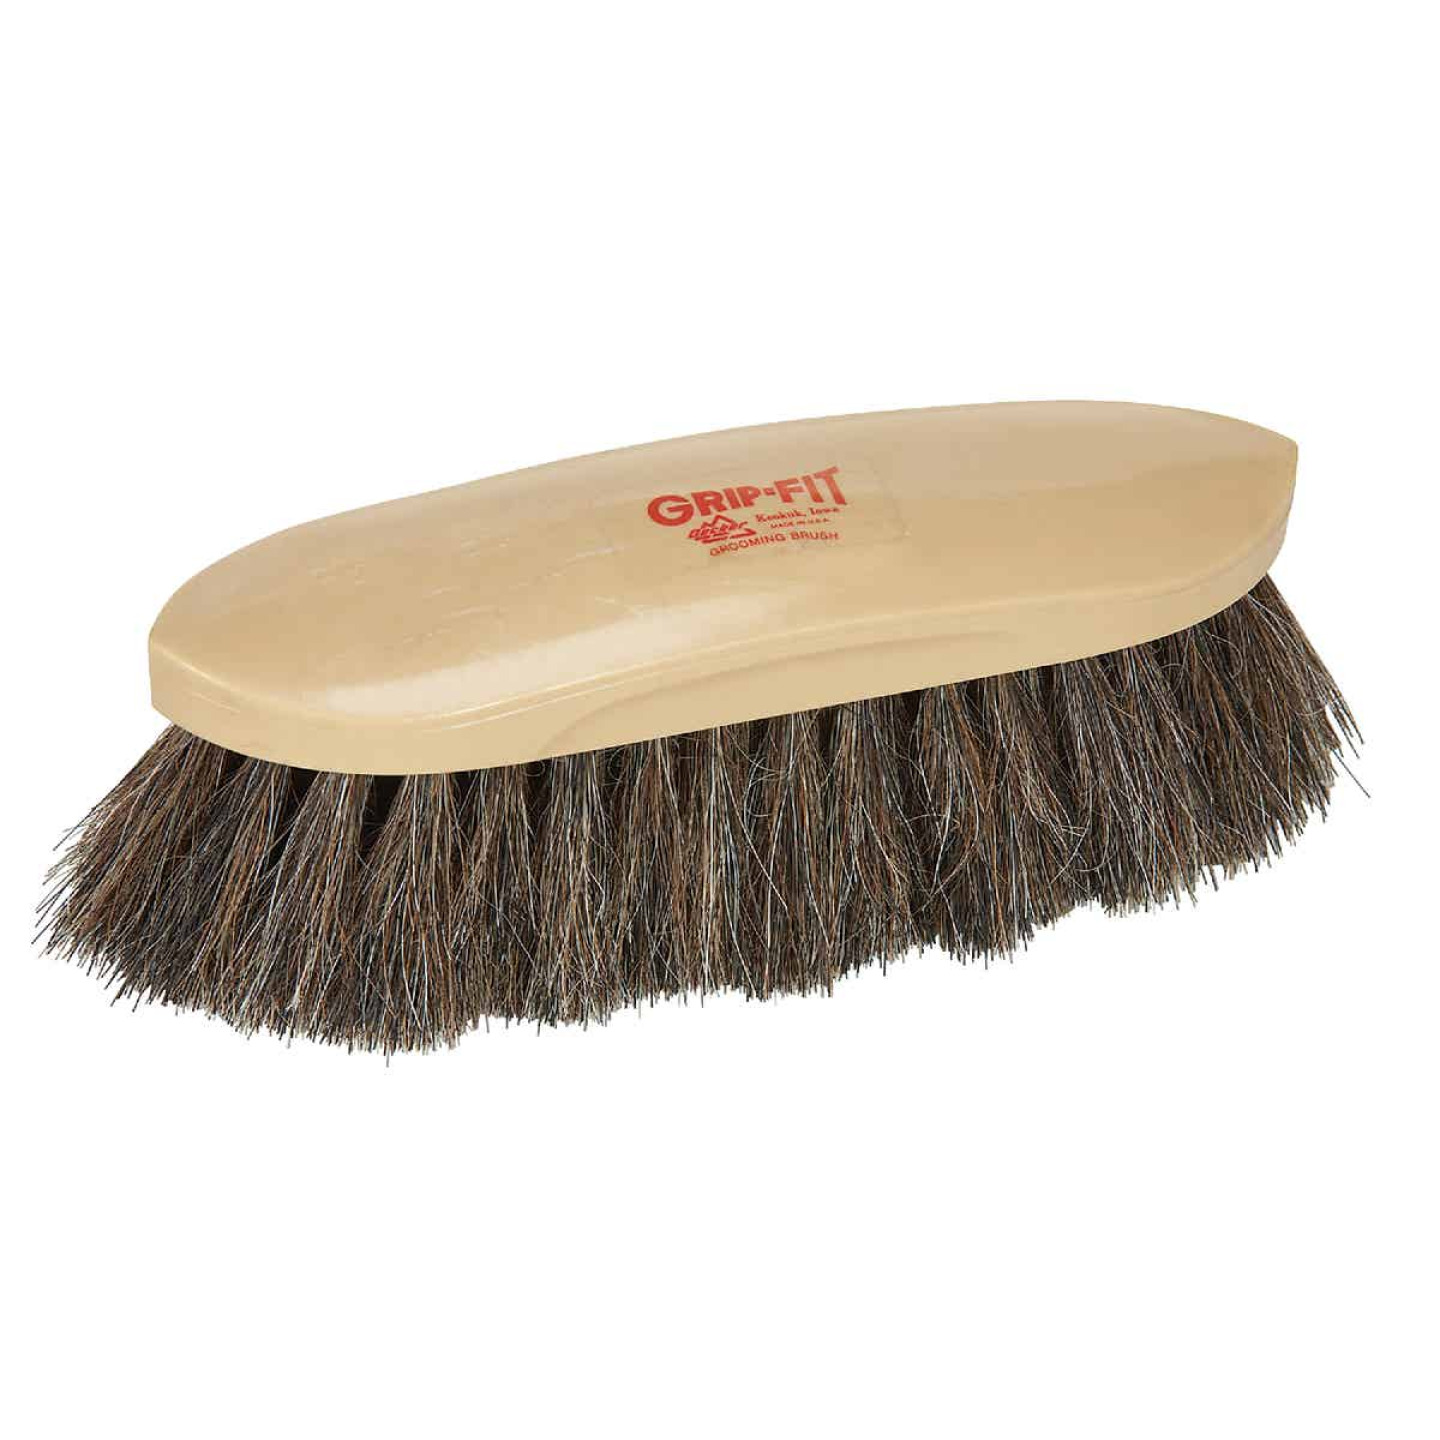 Decker Horse Hair Bristles 2 In. Trim Size Grooming Brush Image 1